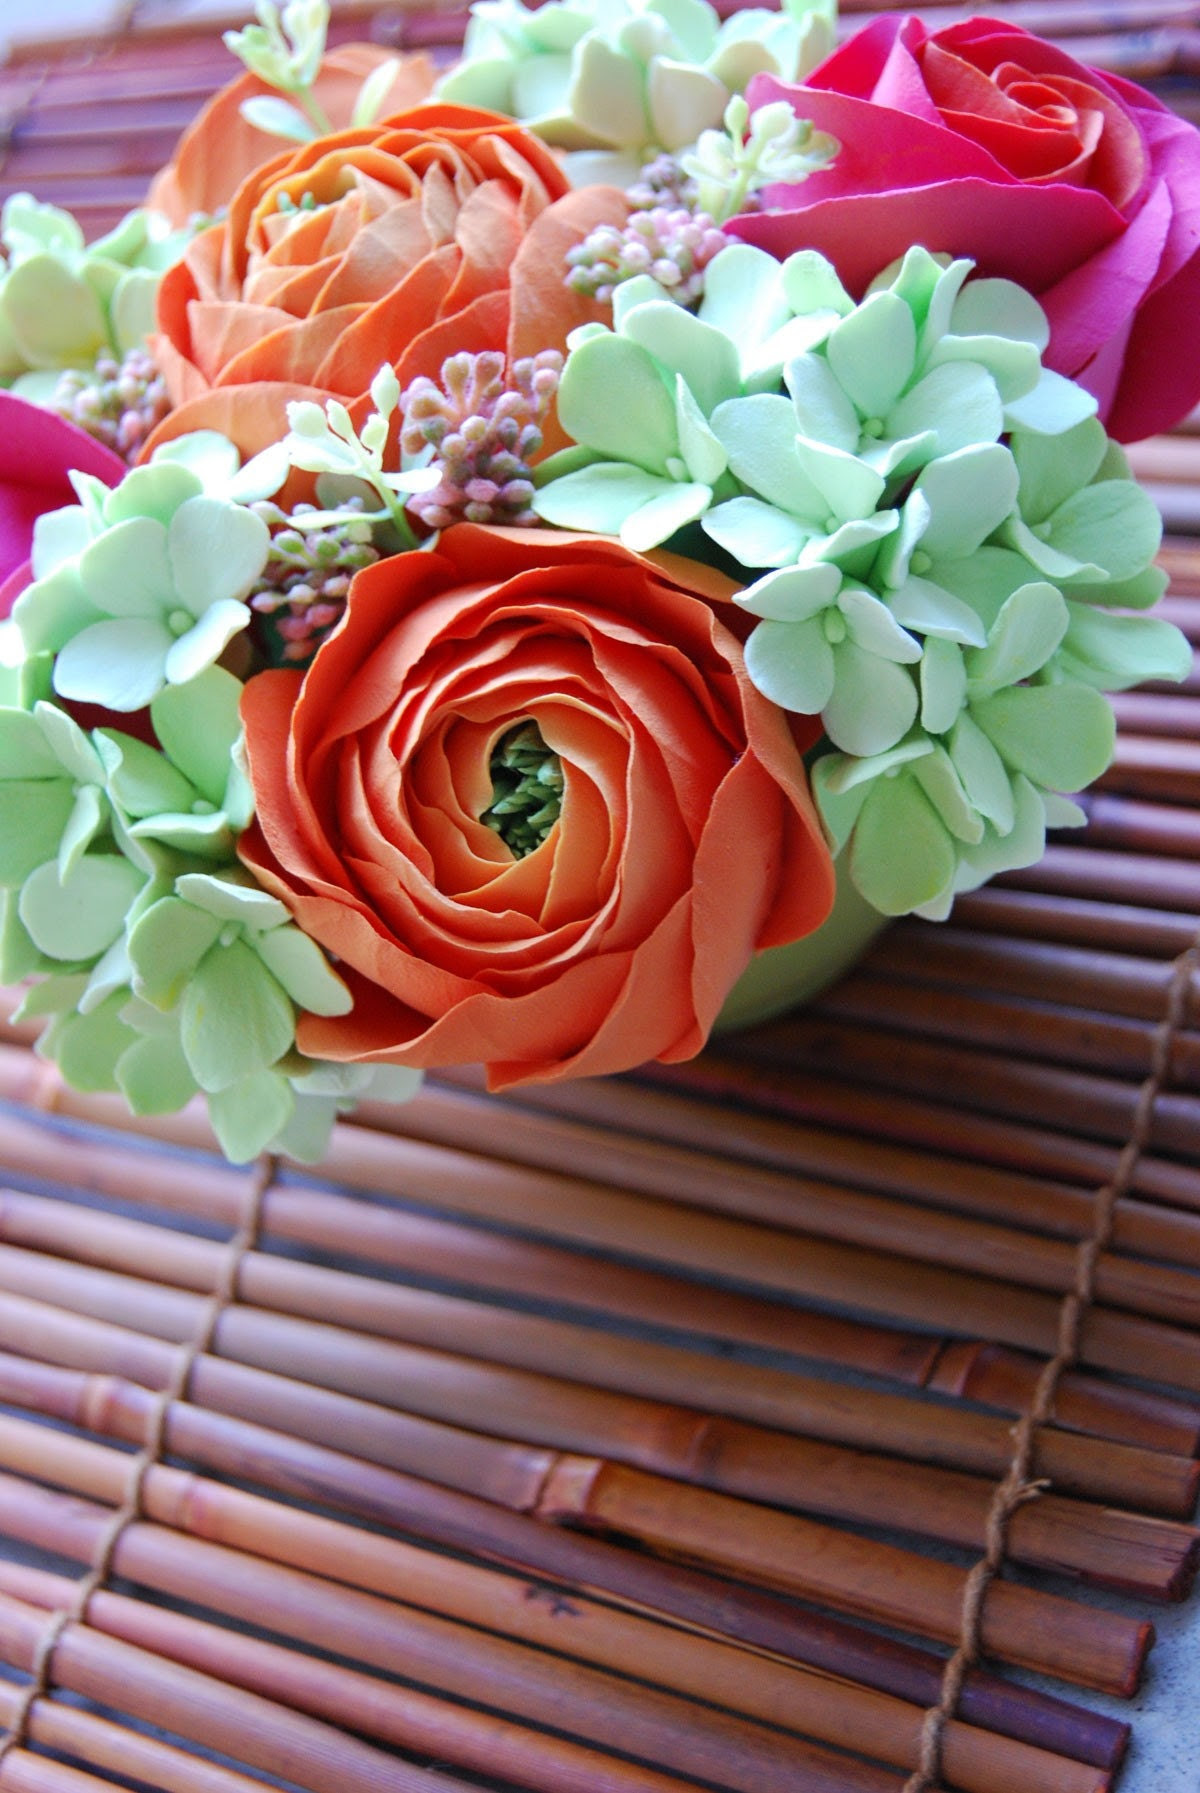 Spring Flowers - Oranges, Pinks and Greens